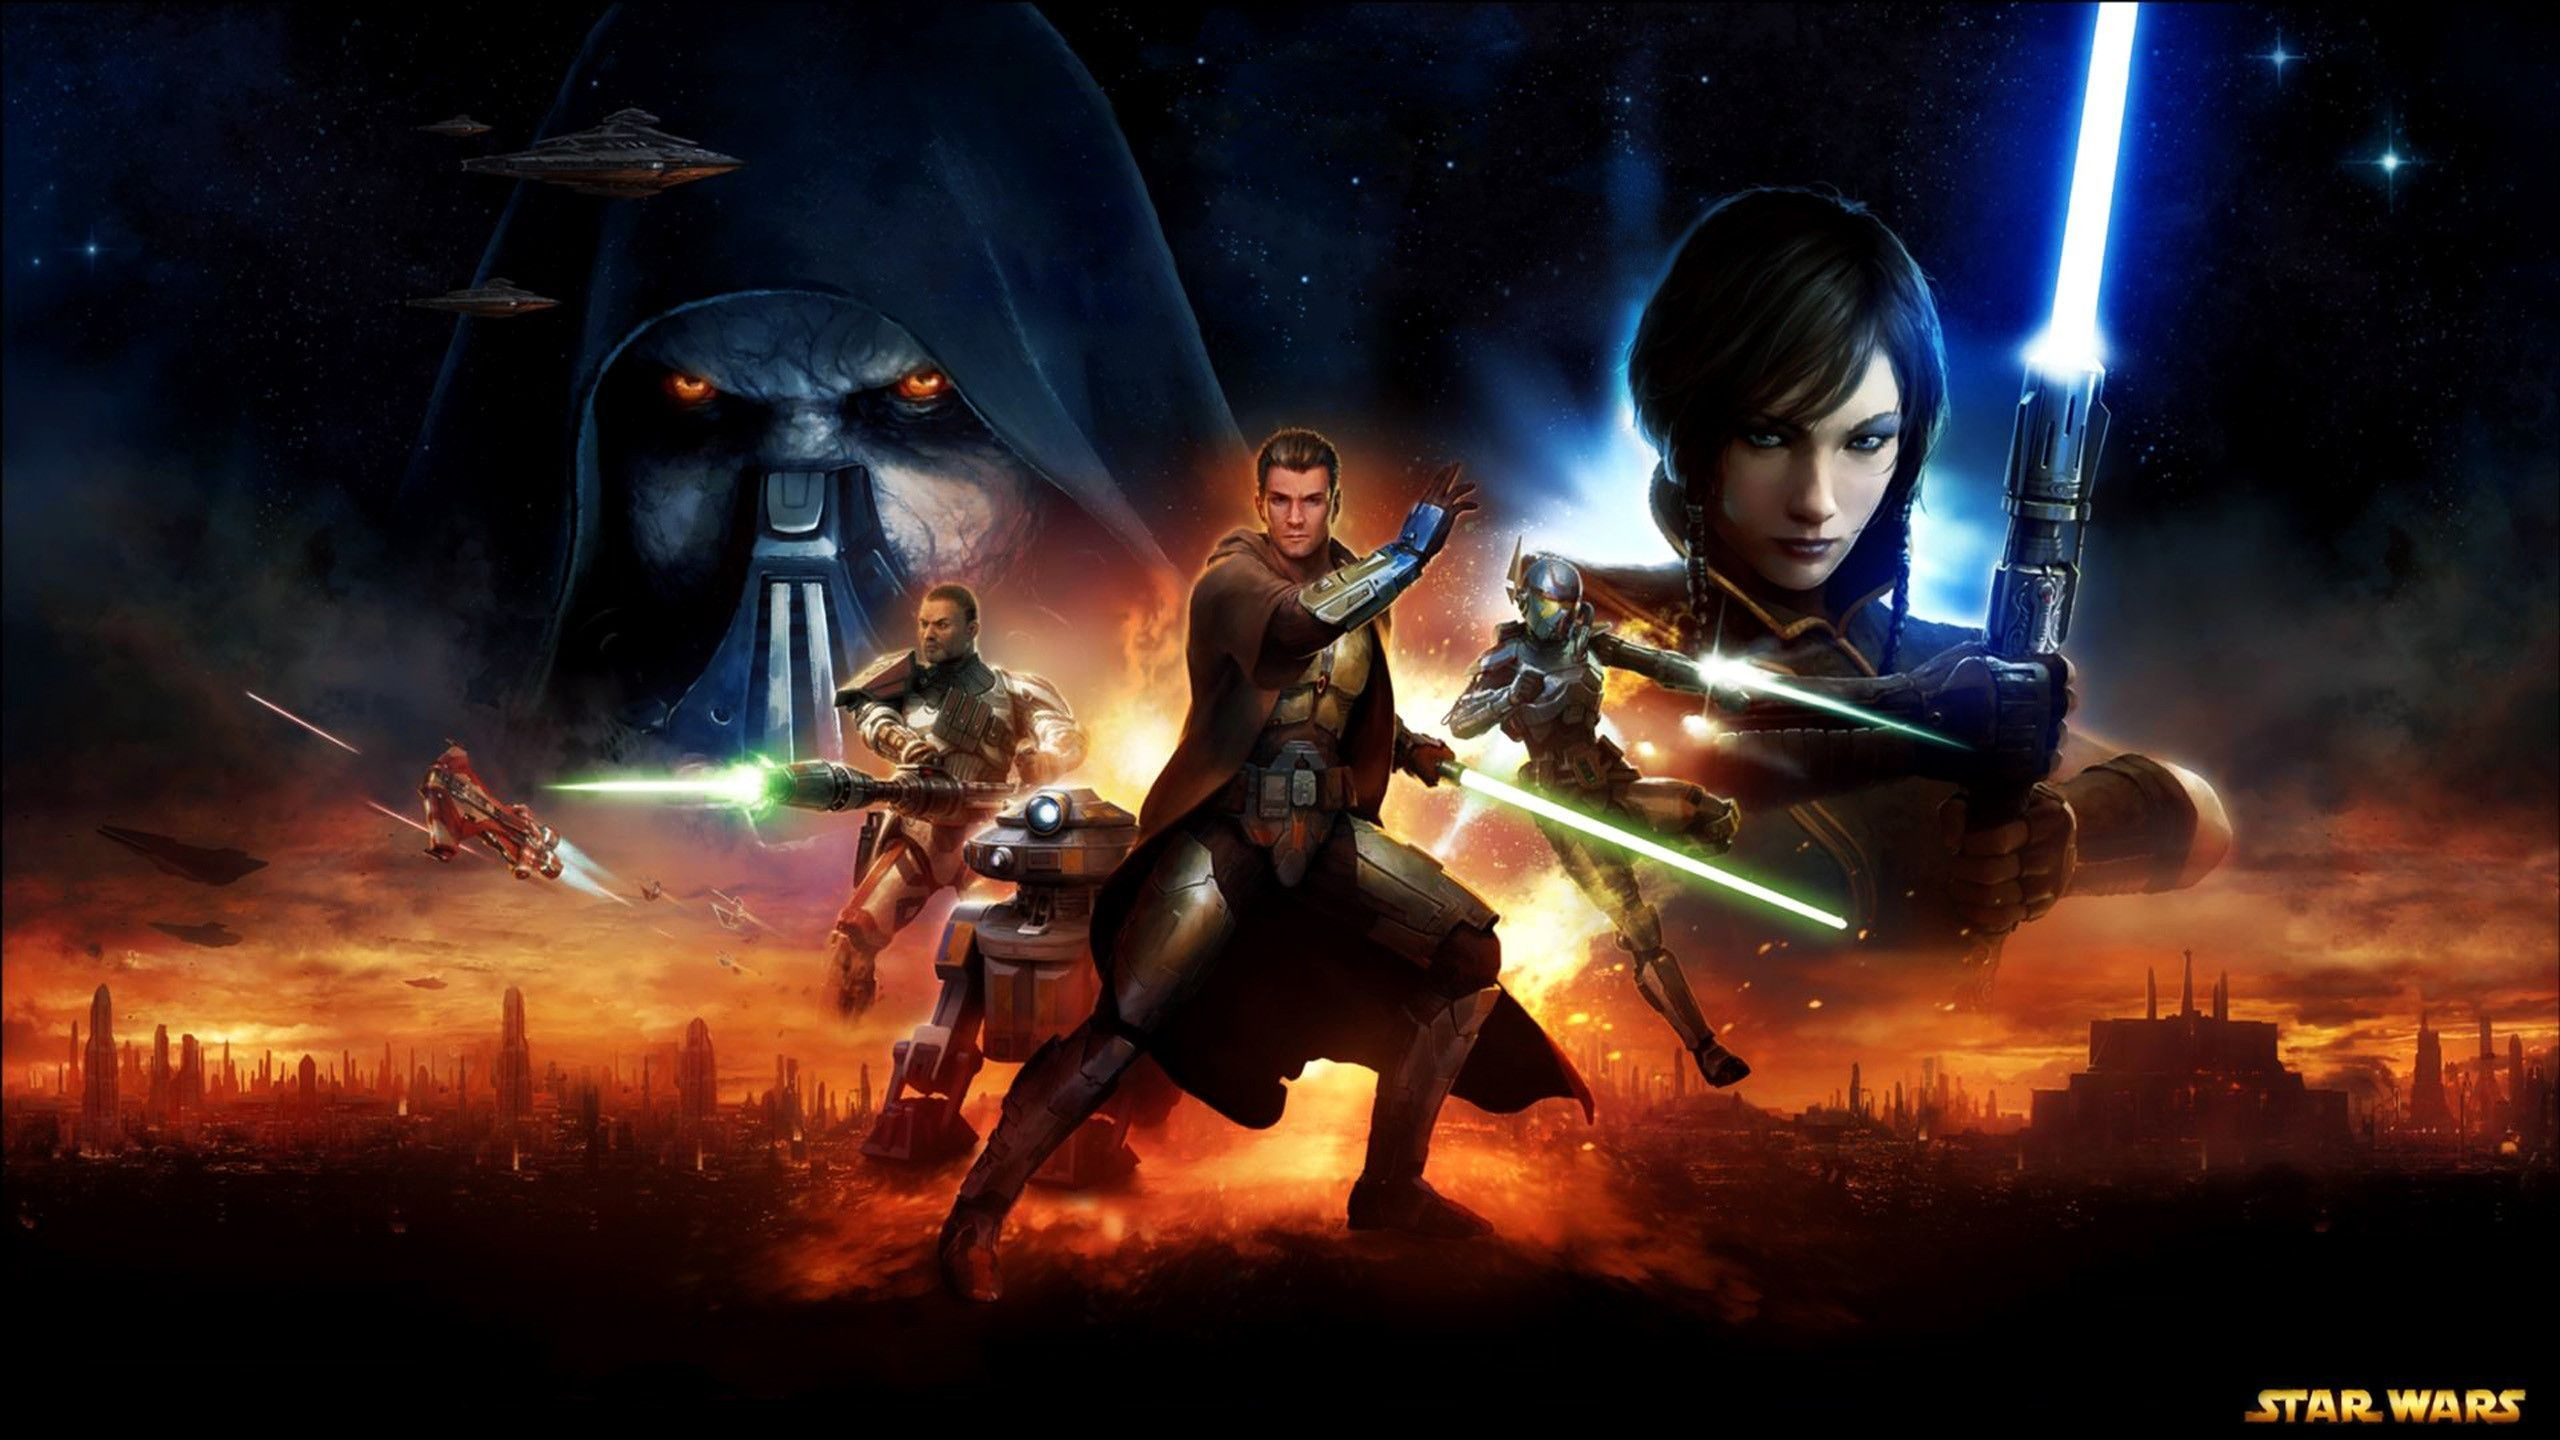 2560x1440 Star Wars: The Old Republic Wallpapers 1920x1080 - Wallpaper Cave